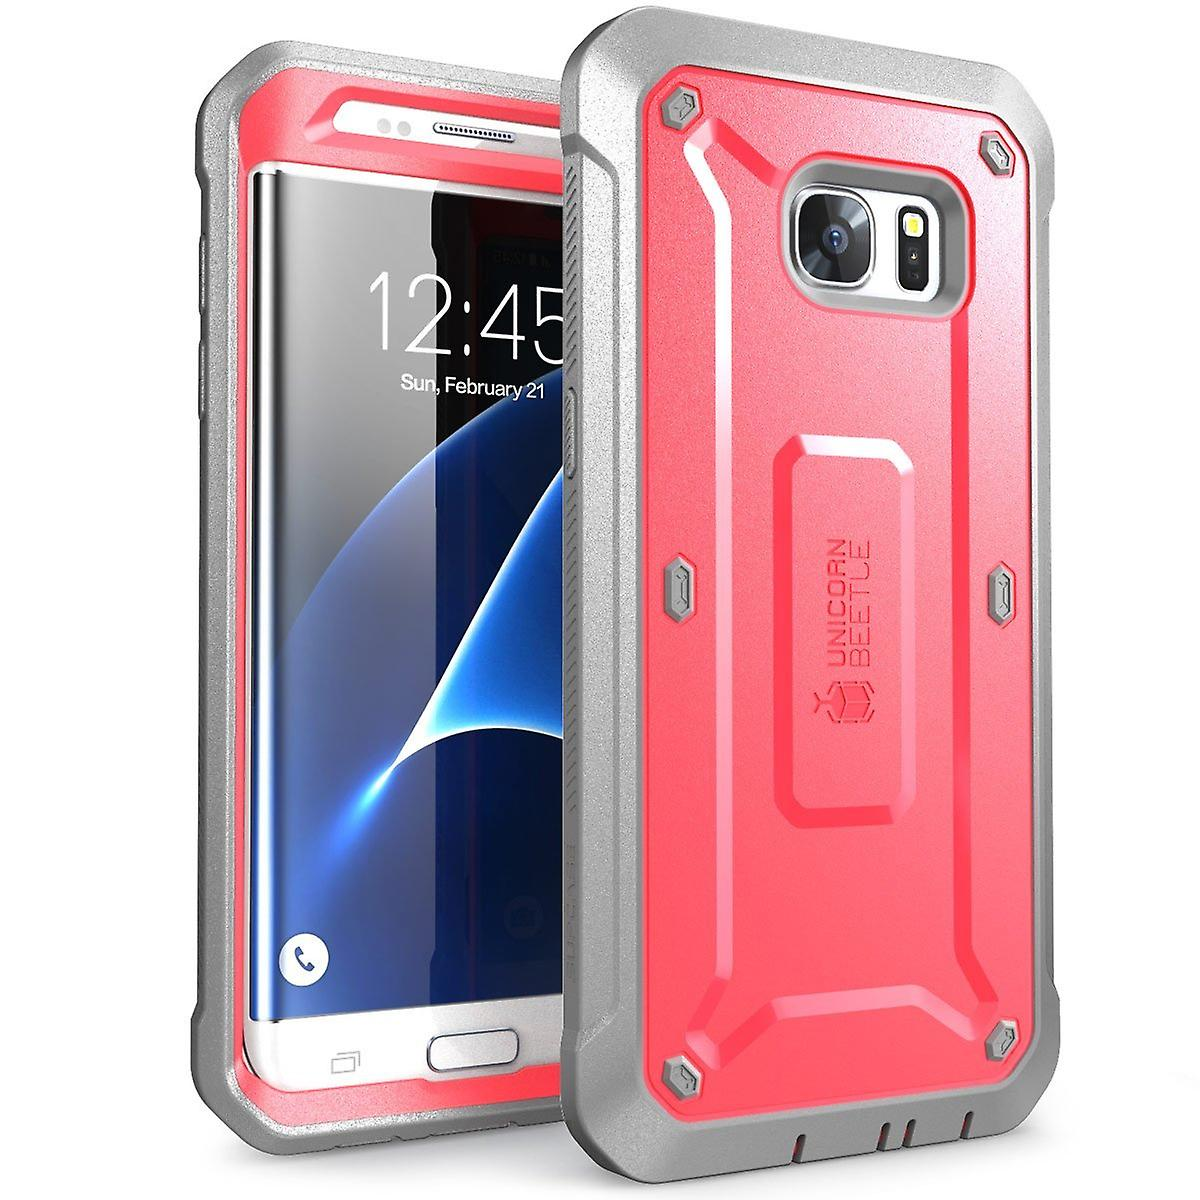 SUPCASE Galaxy S7 Edge Unicorn Beetle Pro Case and Holster - Pink